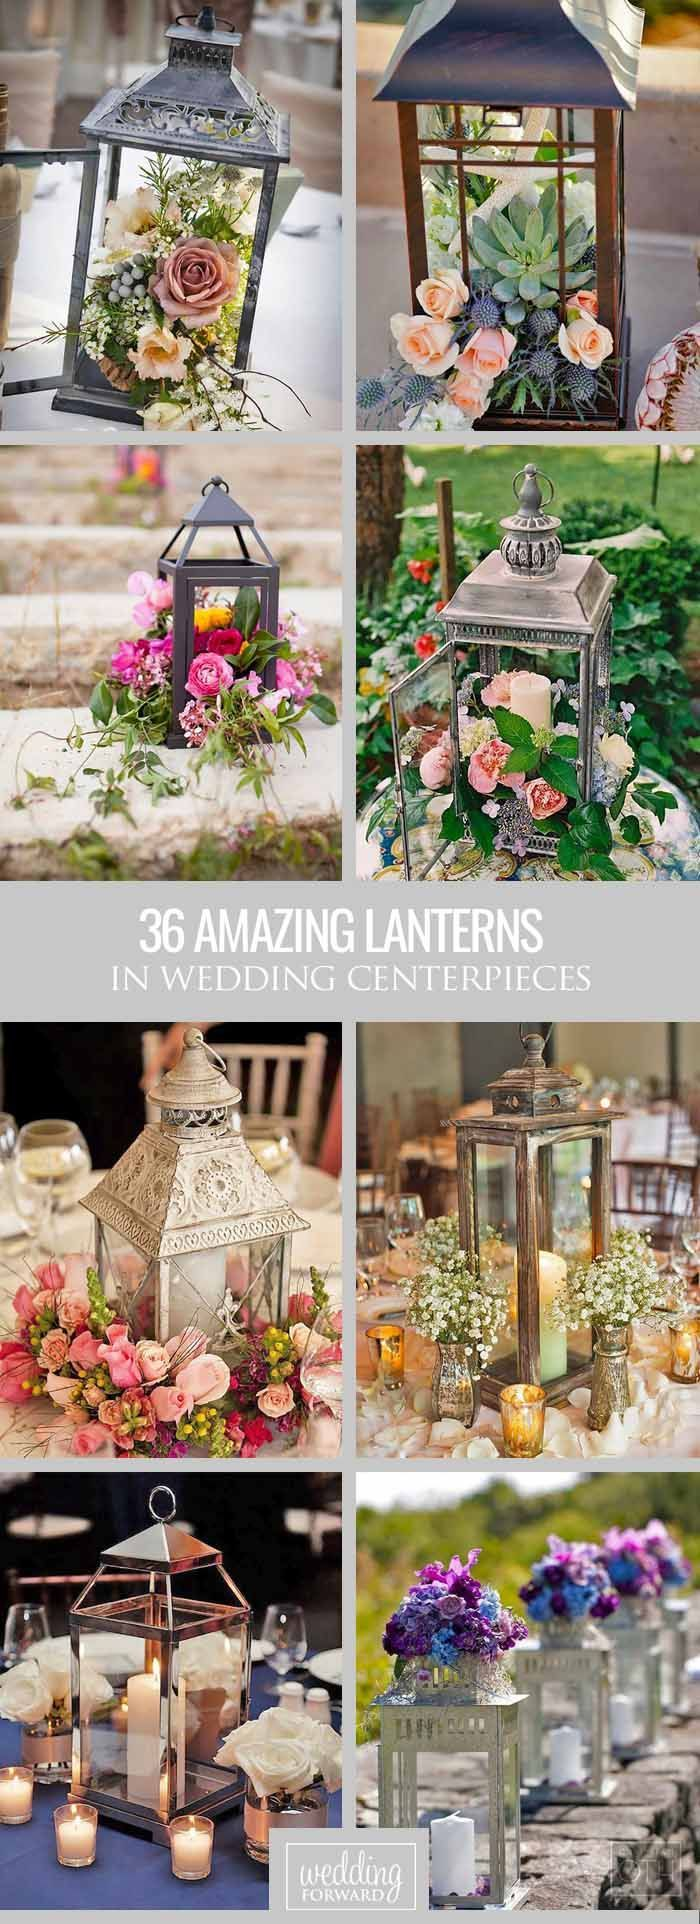 pictures of wedding centerpieces using mason jars%0A    Amazing Lantern Wedding Centerpiece Ideas